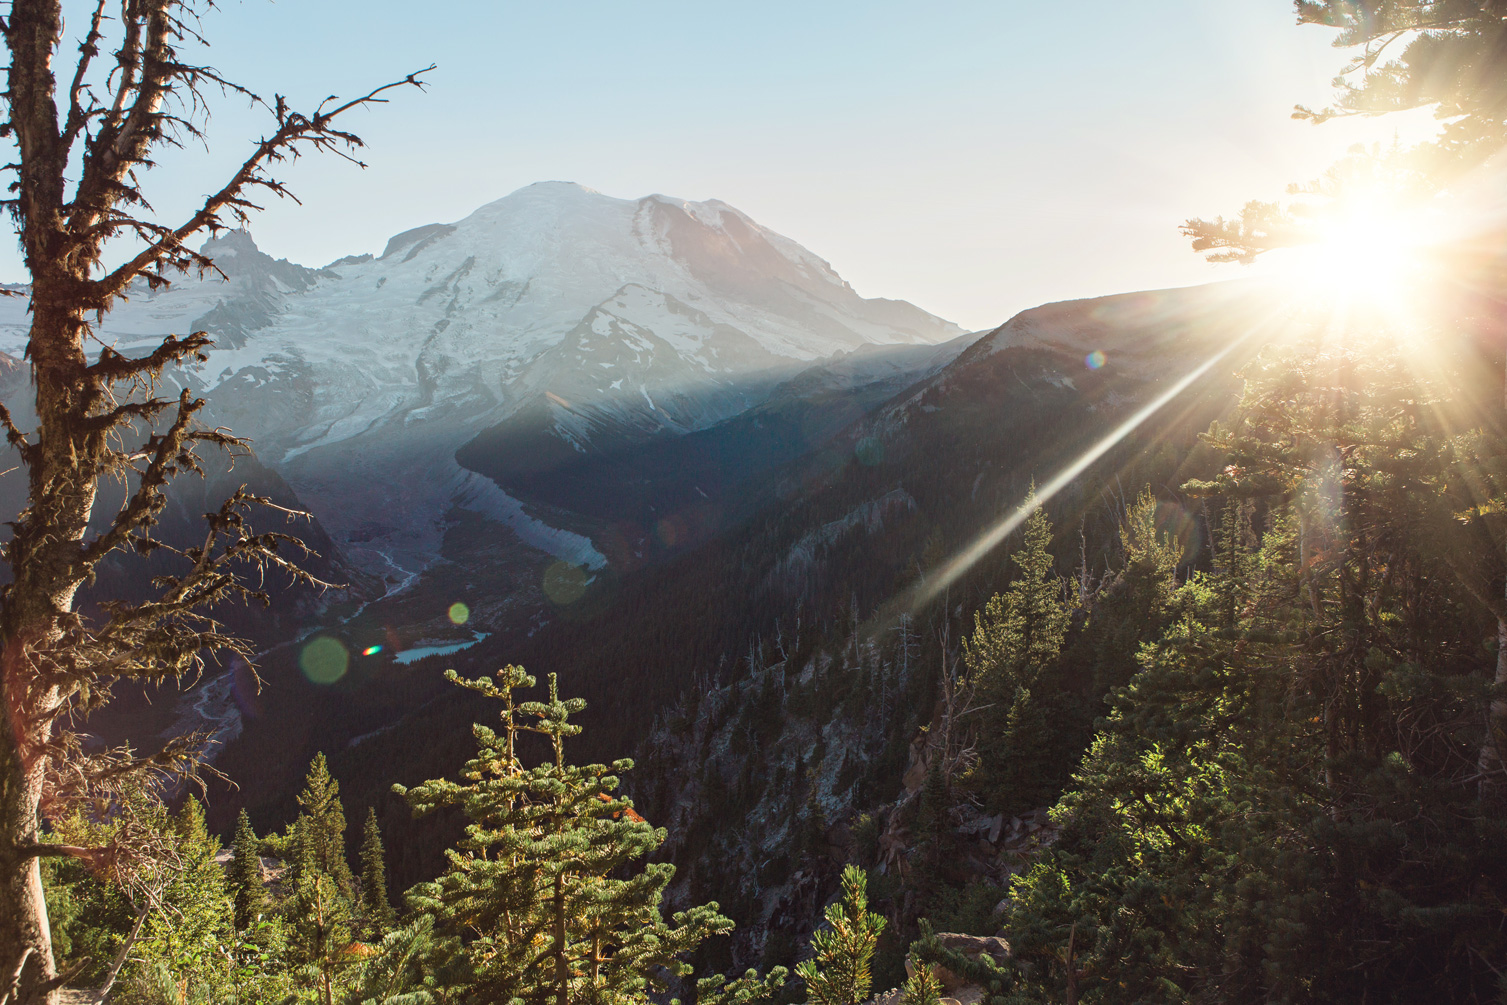 CindyGiovagnoli_Mount_Rainier_National_Park_Washington-001.jpg